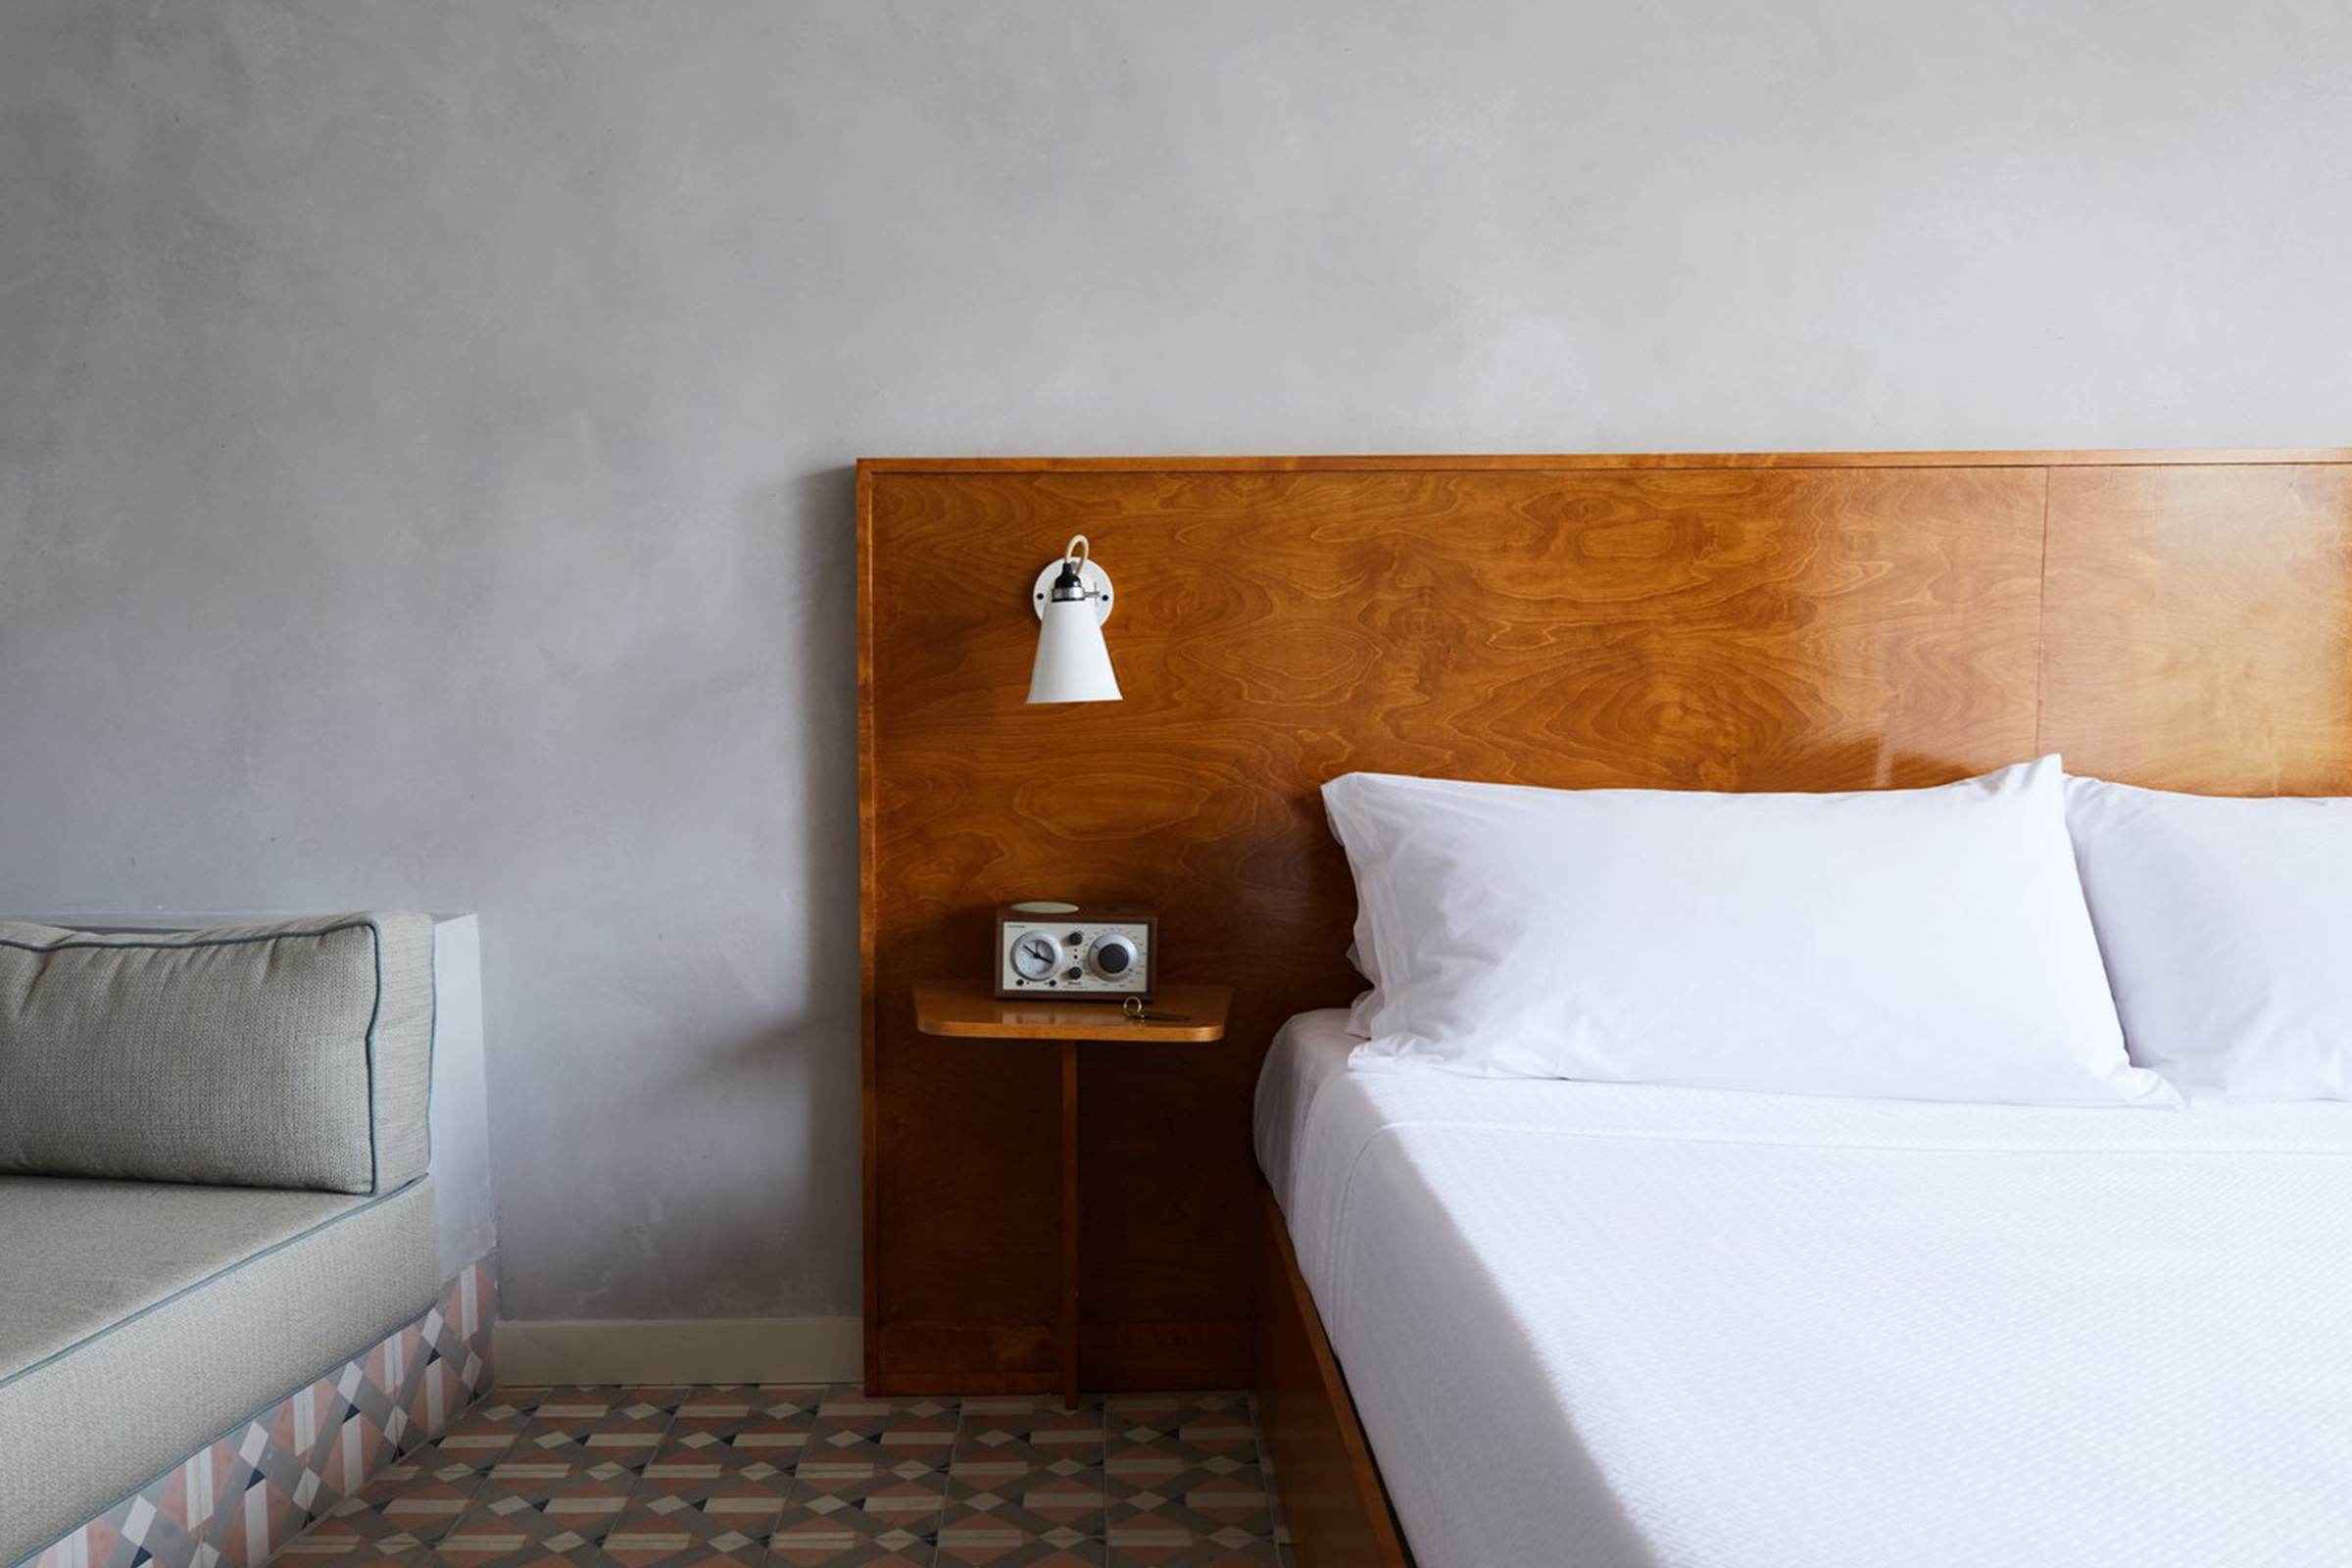 Design Hotel Of The Week: The Drifter Hotel New Orleans